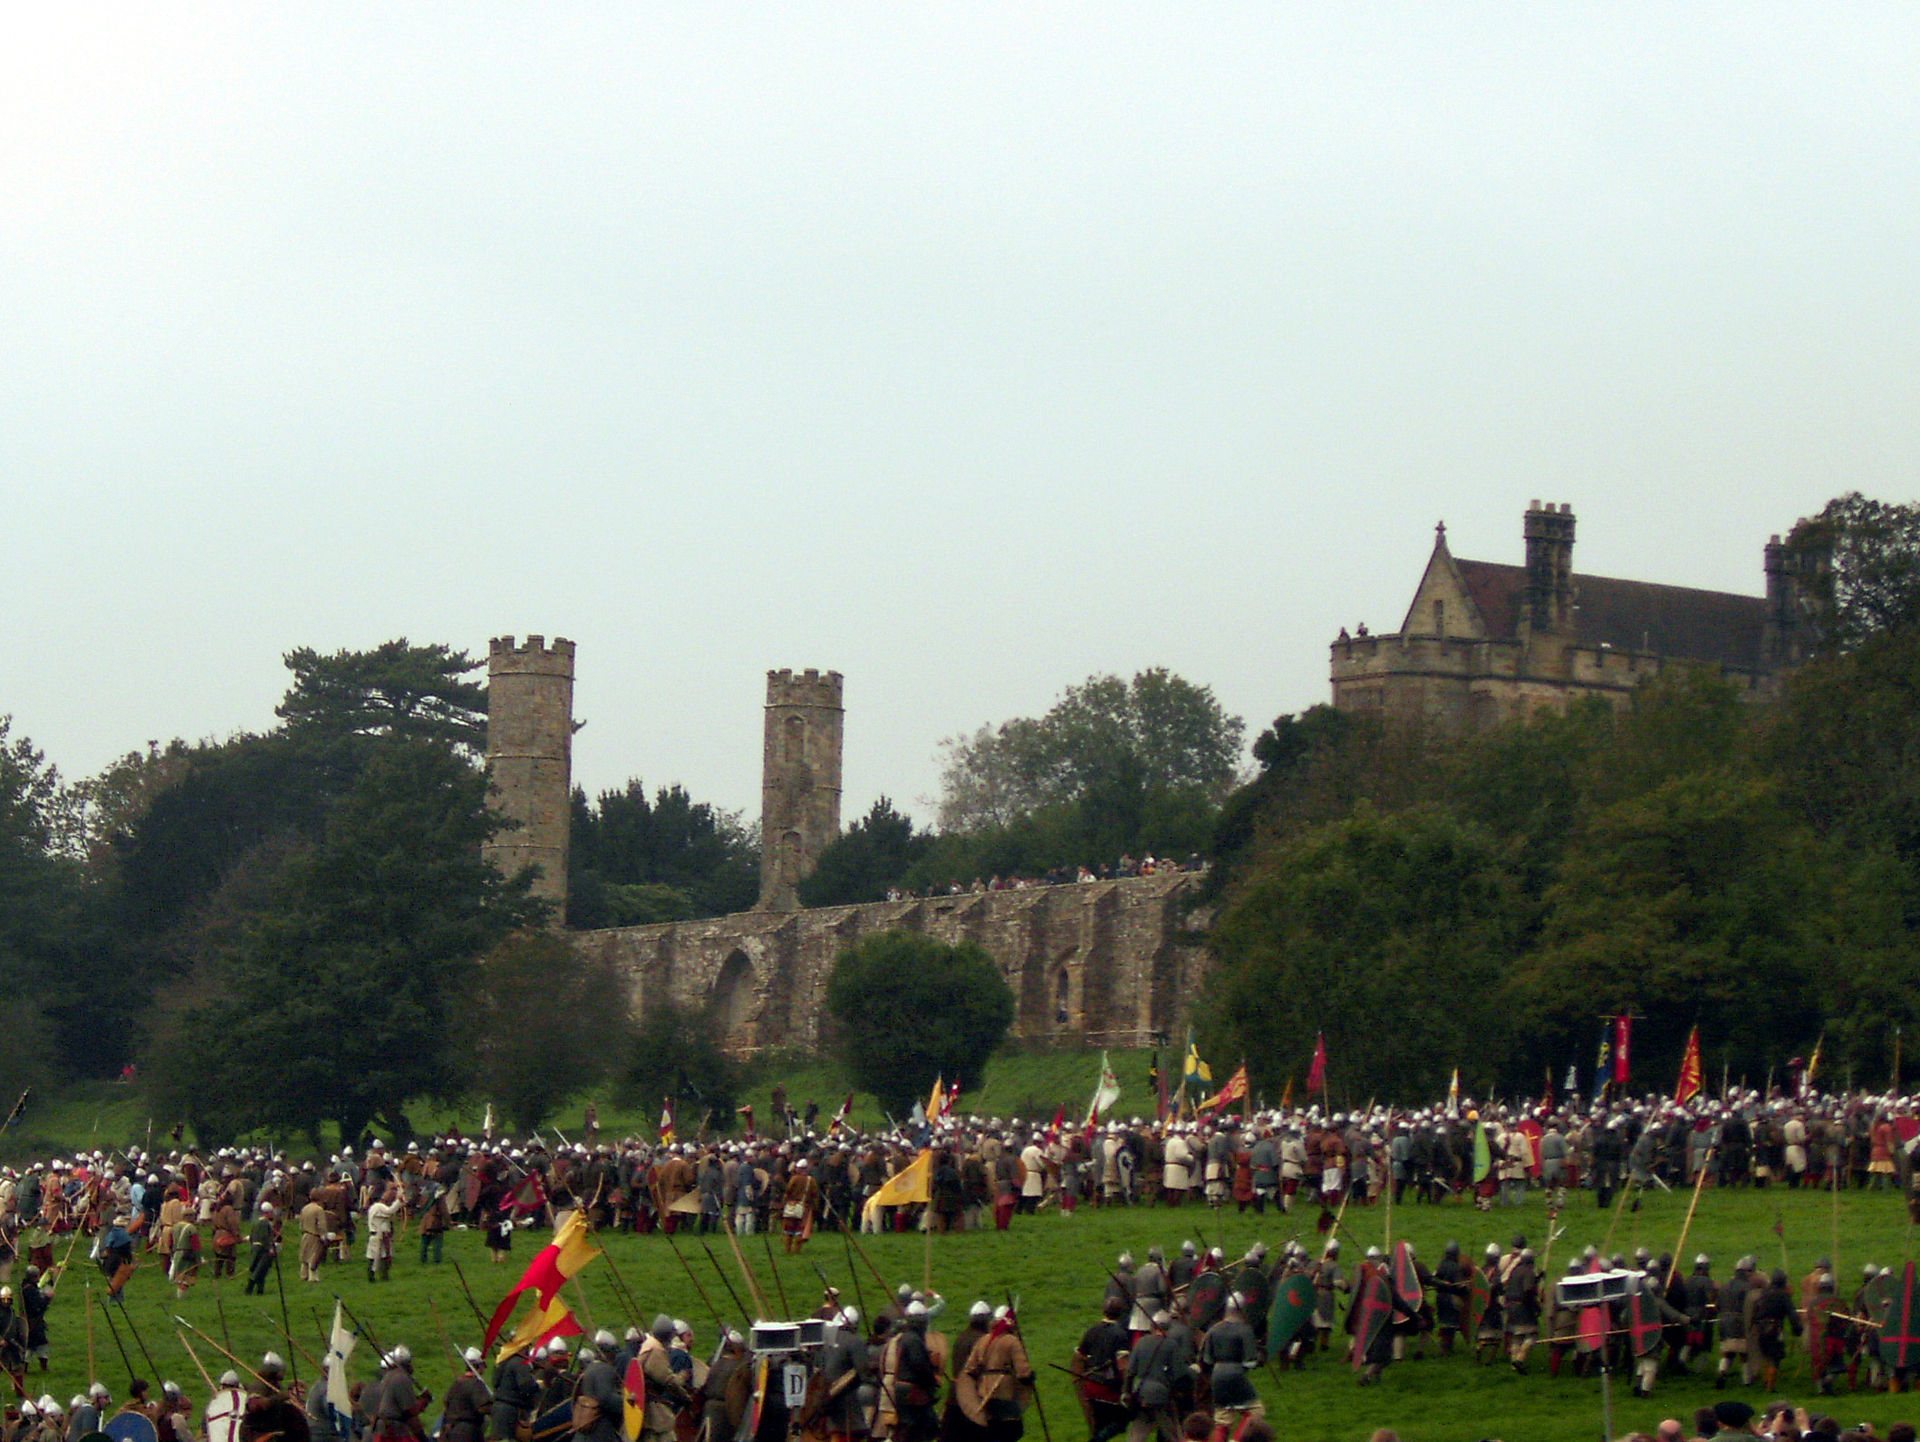 Re-enactors fighting the Battle of Hastings.